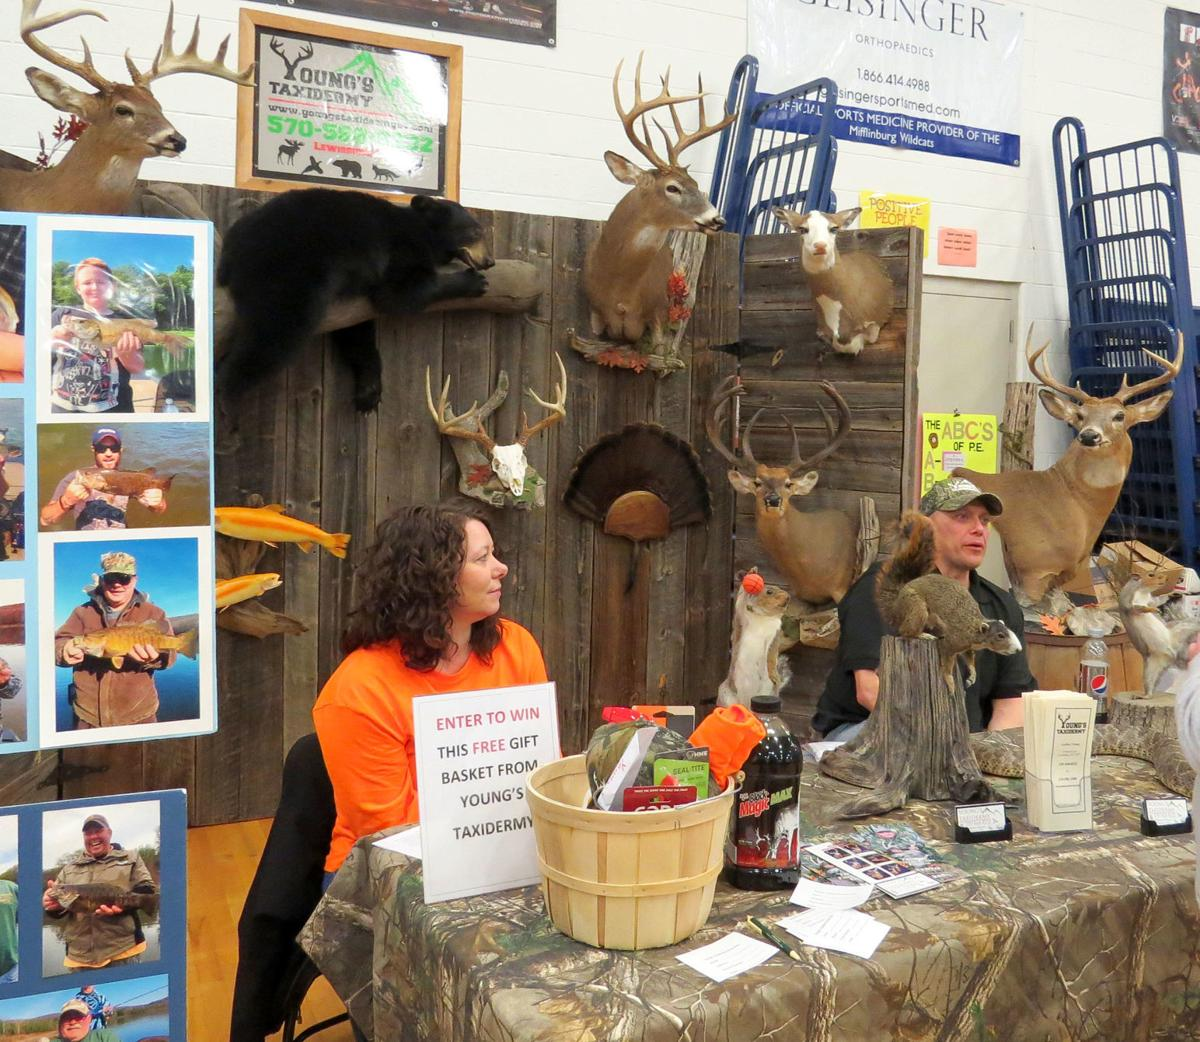 Thousands expected for cabin fever expo